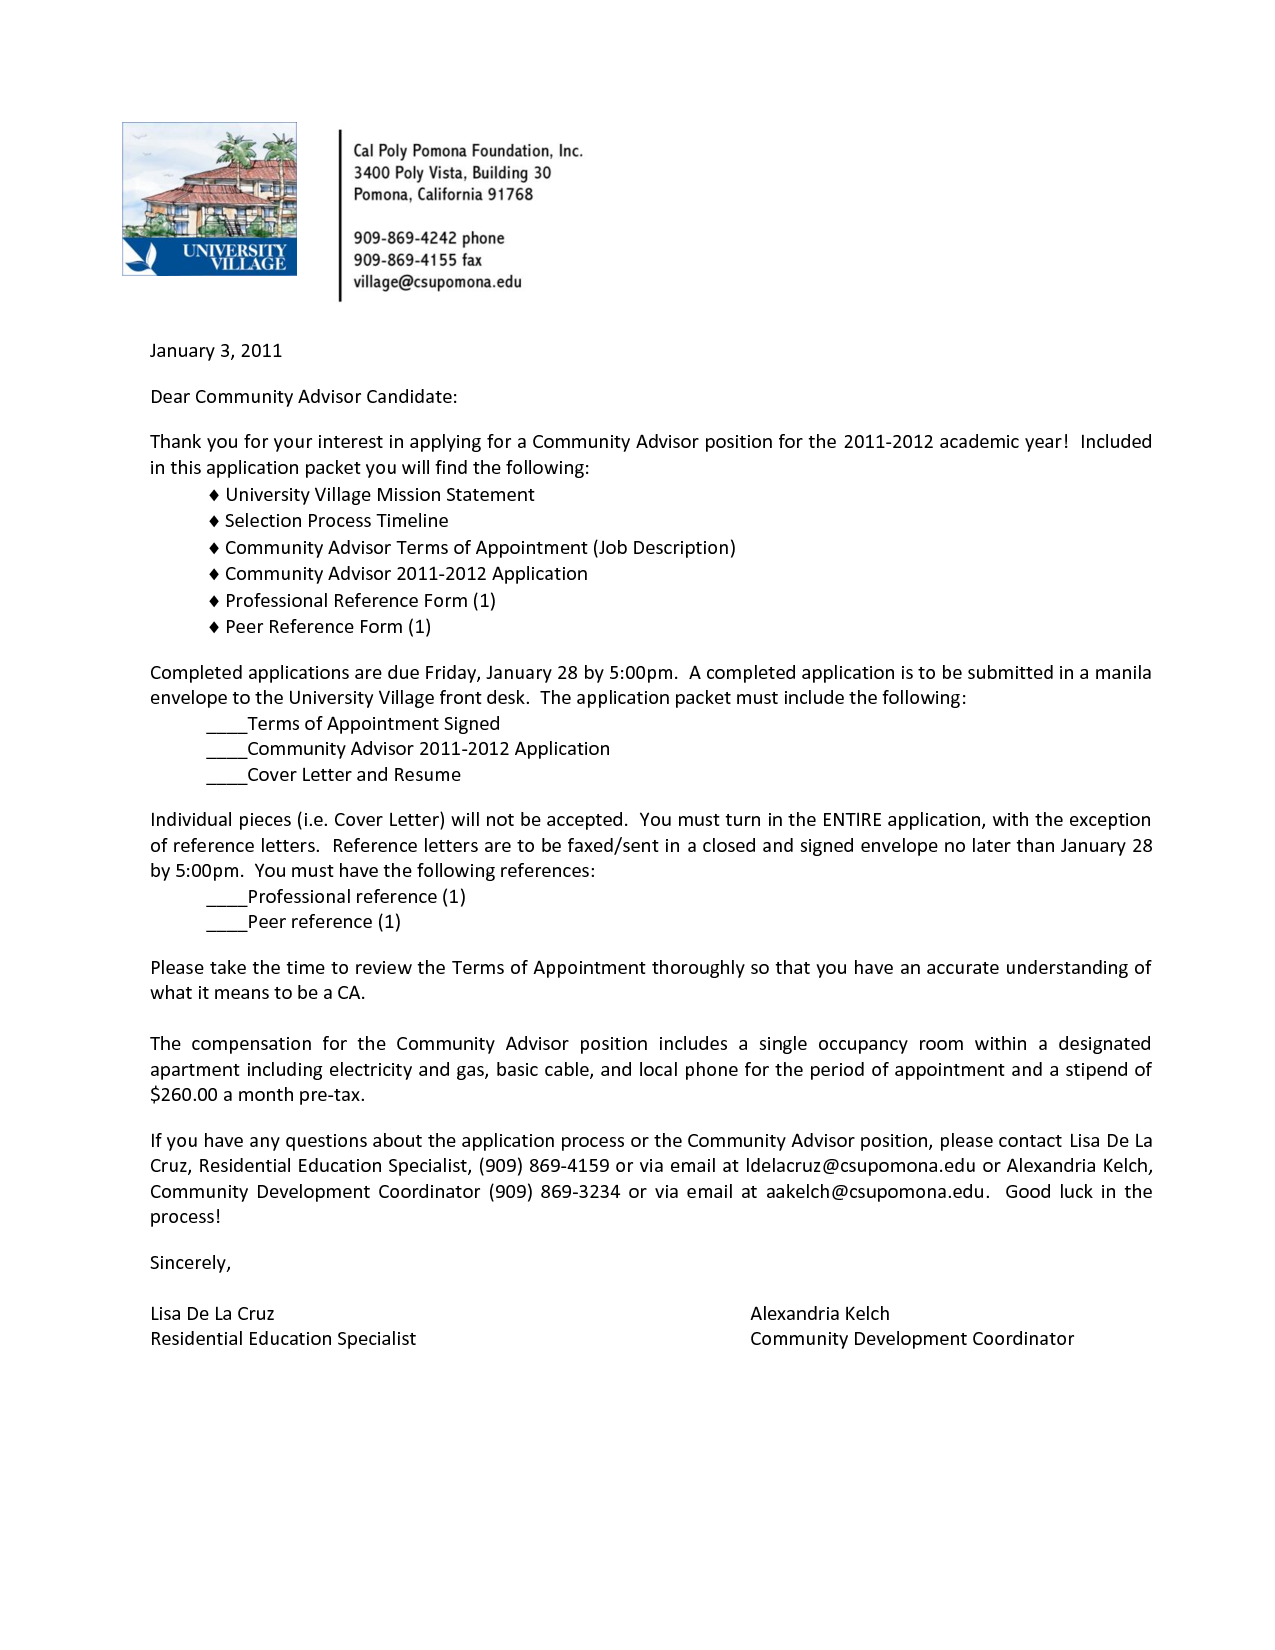 Cover letter examples for paraeducator httpresumecareer cover letter examples for paraeducator httpresumecareerfo madrichimfo Gallery